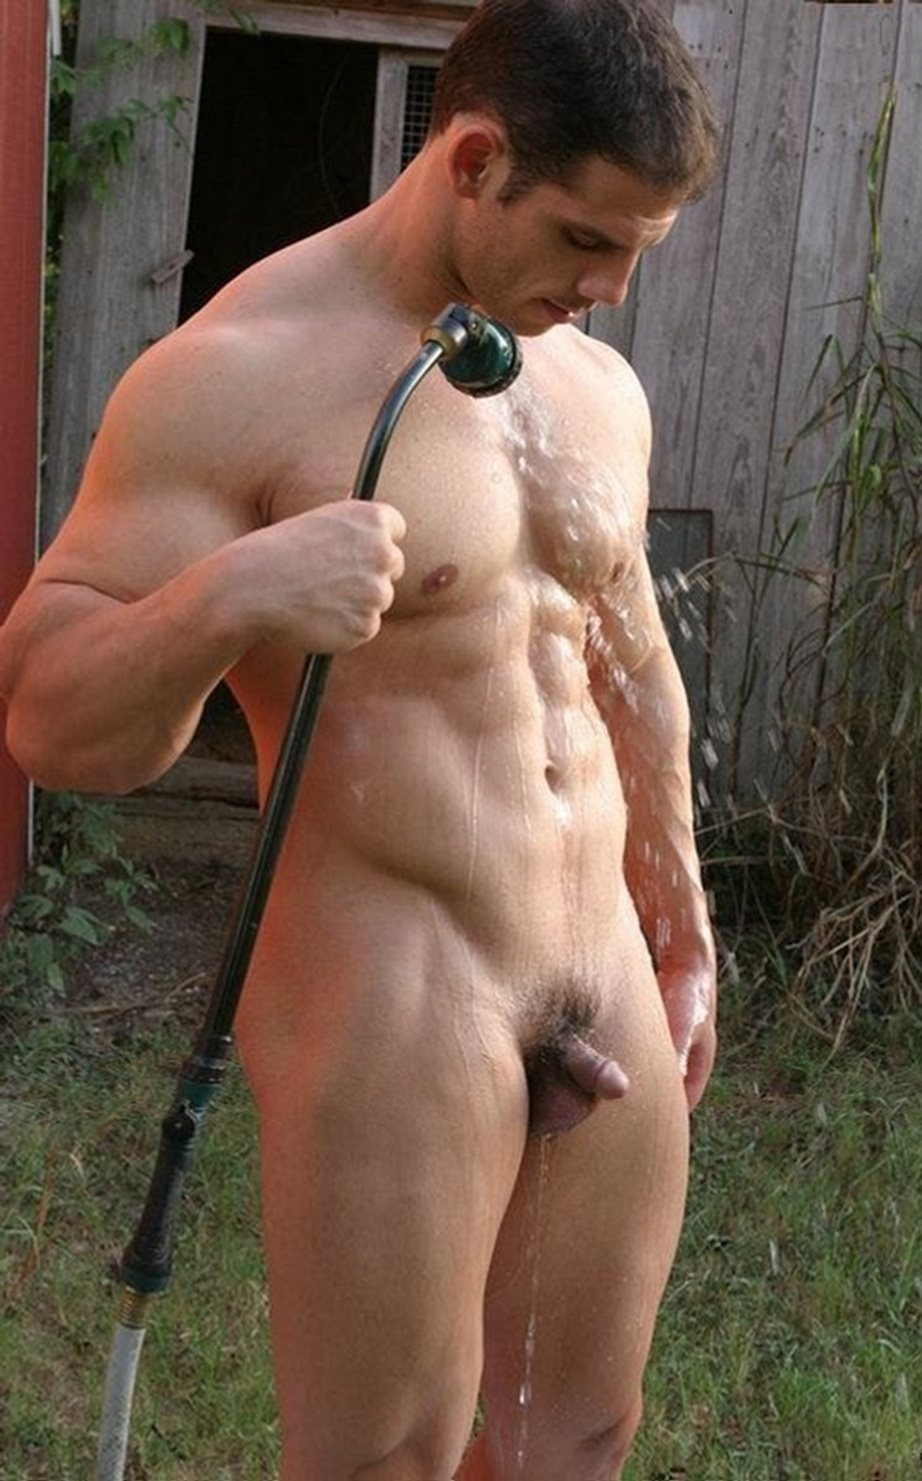 Hot Stud Forced To Shrink His Penis With Cold Shower Outside